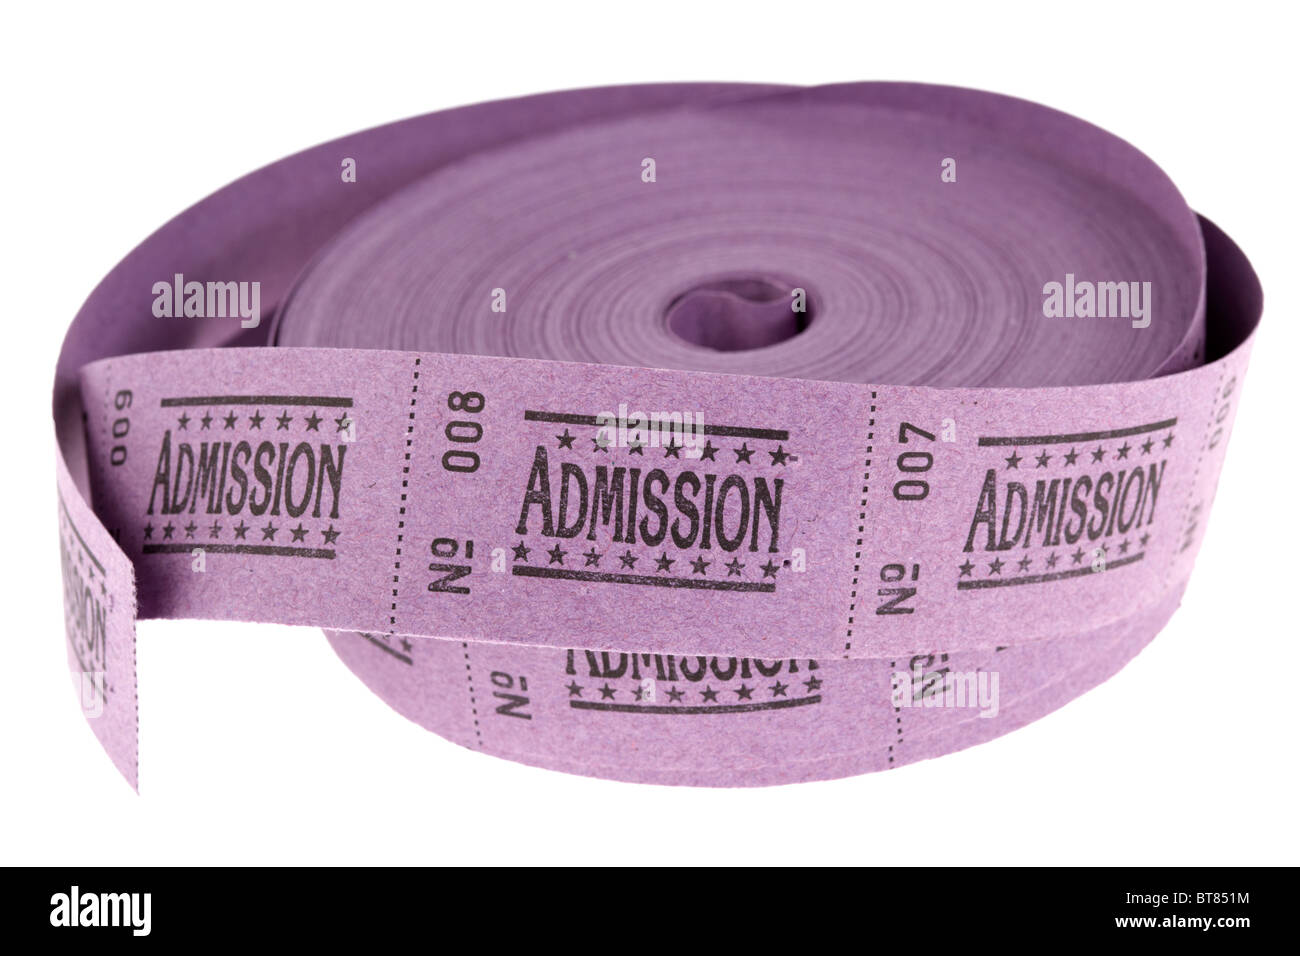 roll of old style cinema admission tickets on white background - Stock Image